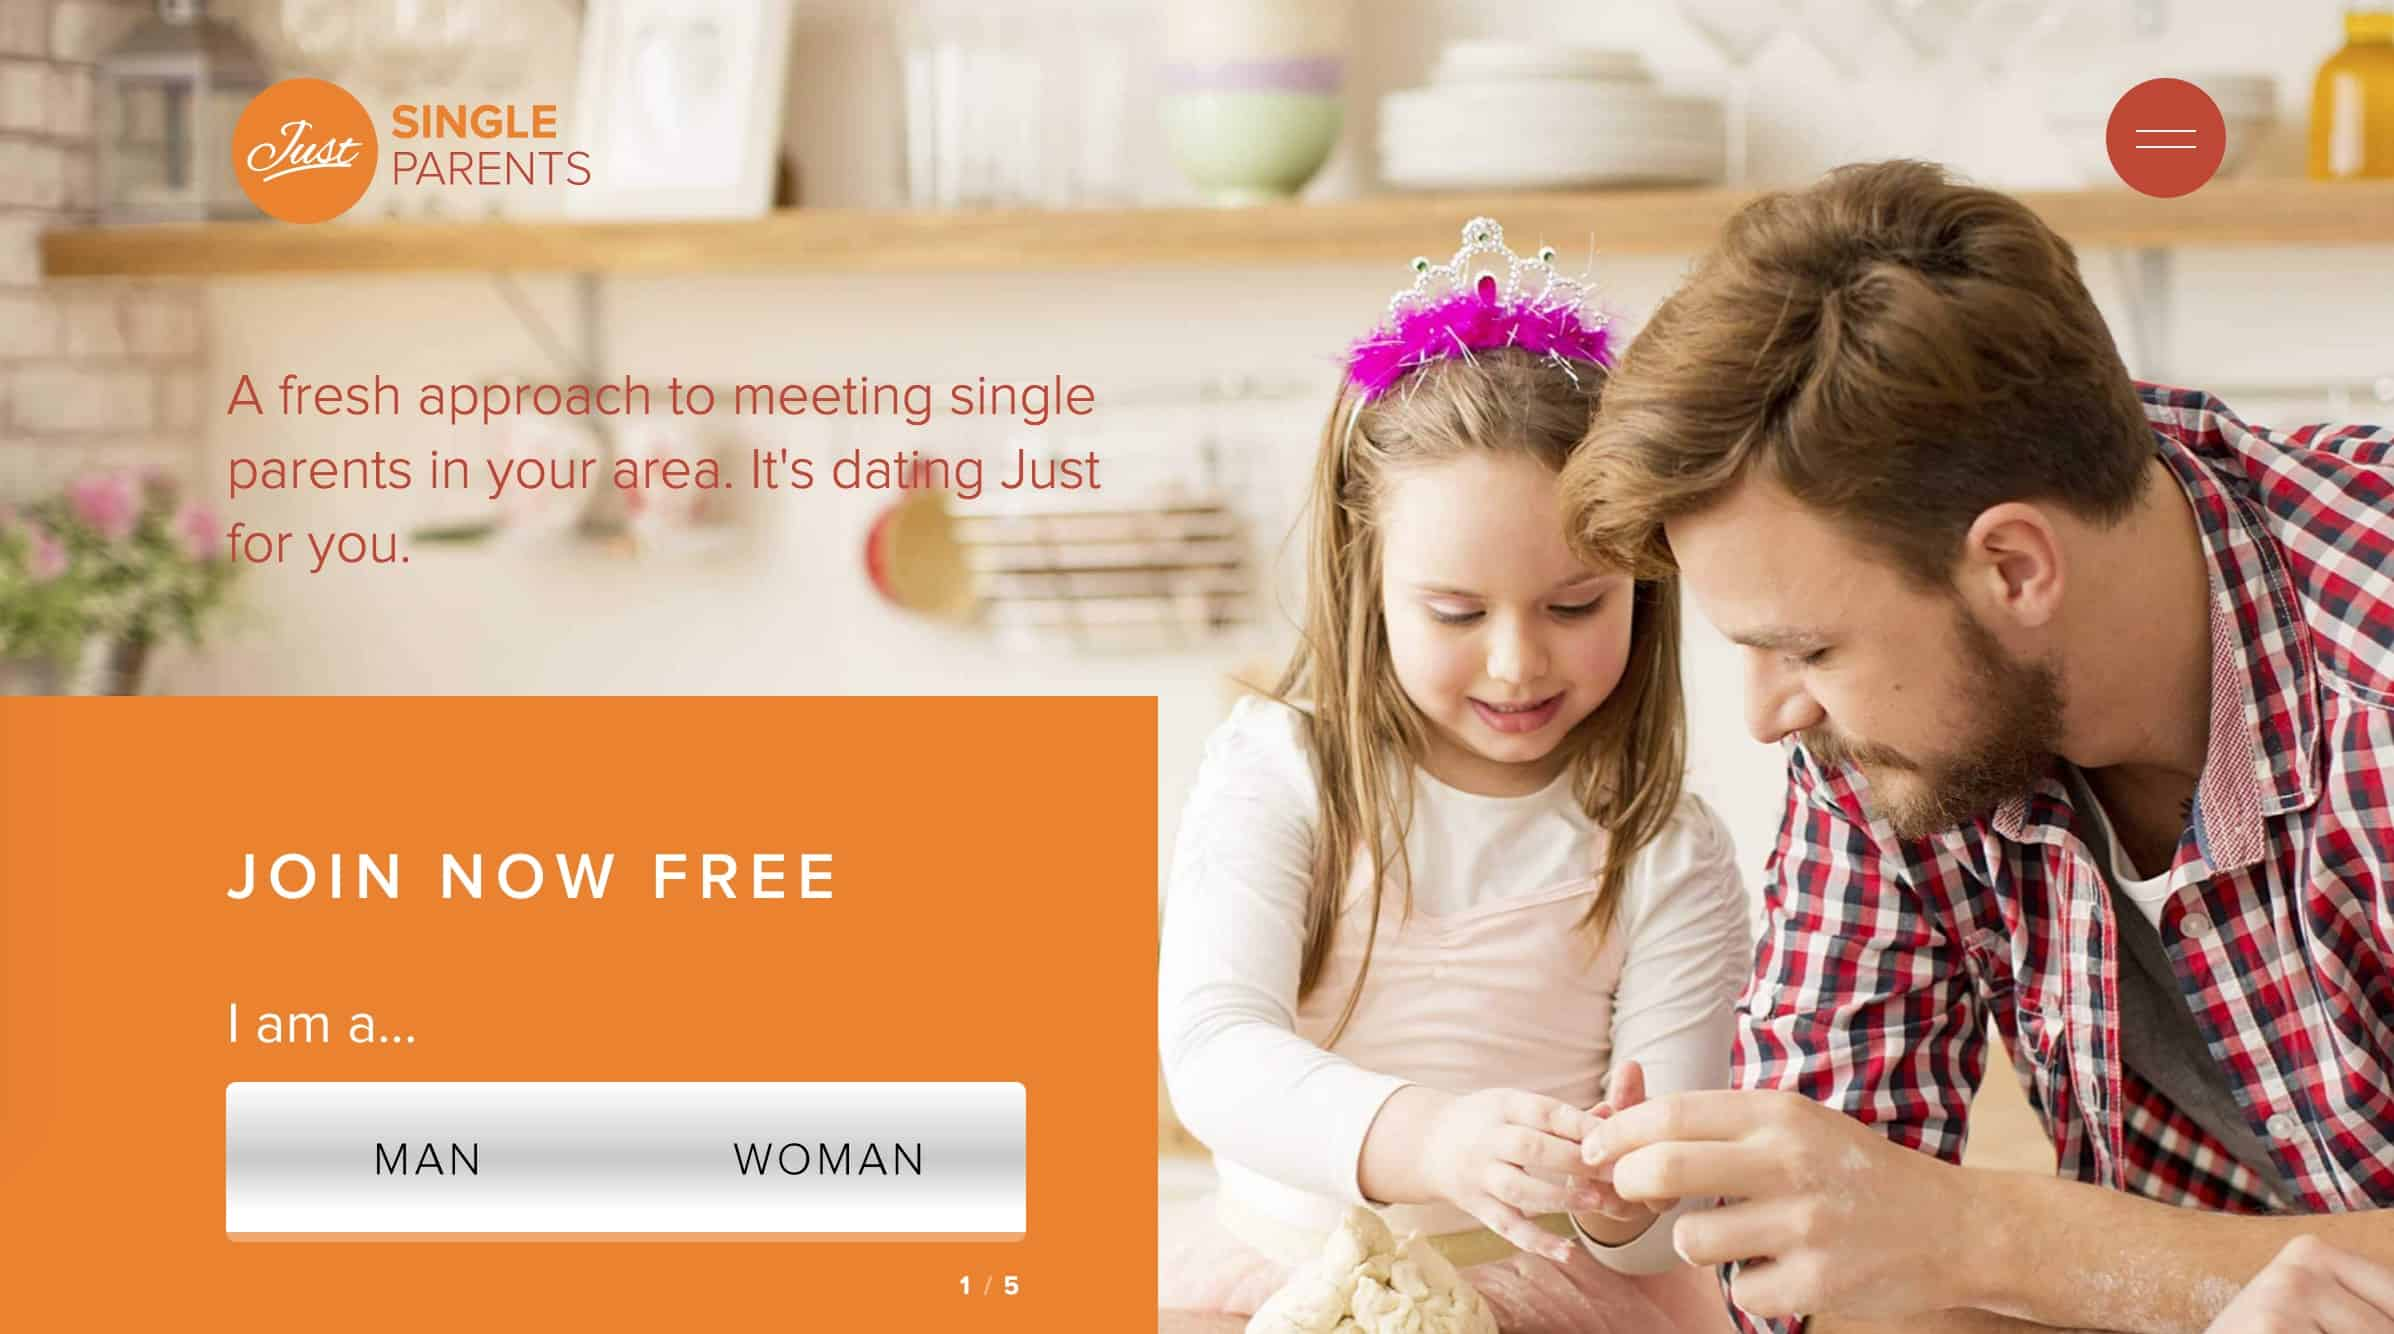 shuqualak single parent dating site Just parents is a single parent dating site for parents who are just looking for other single parents wwwjustparentscom.